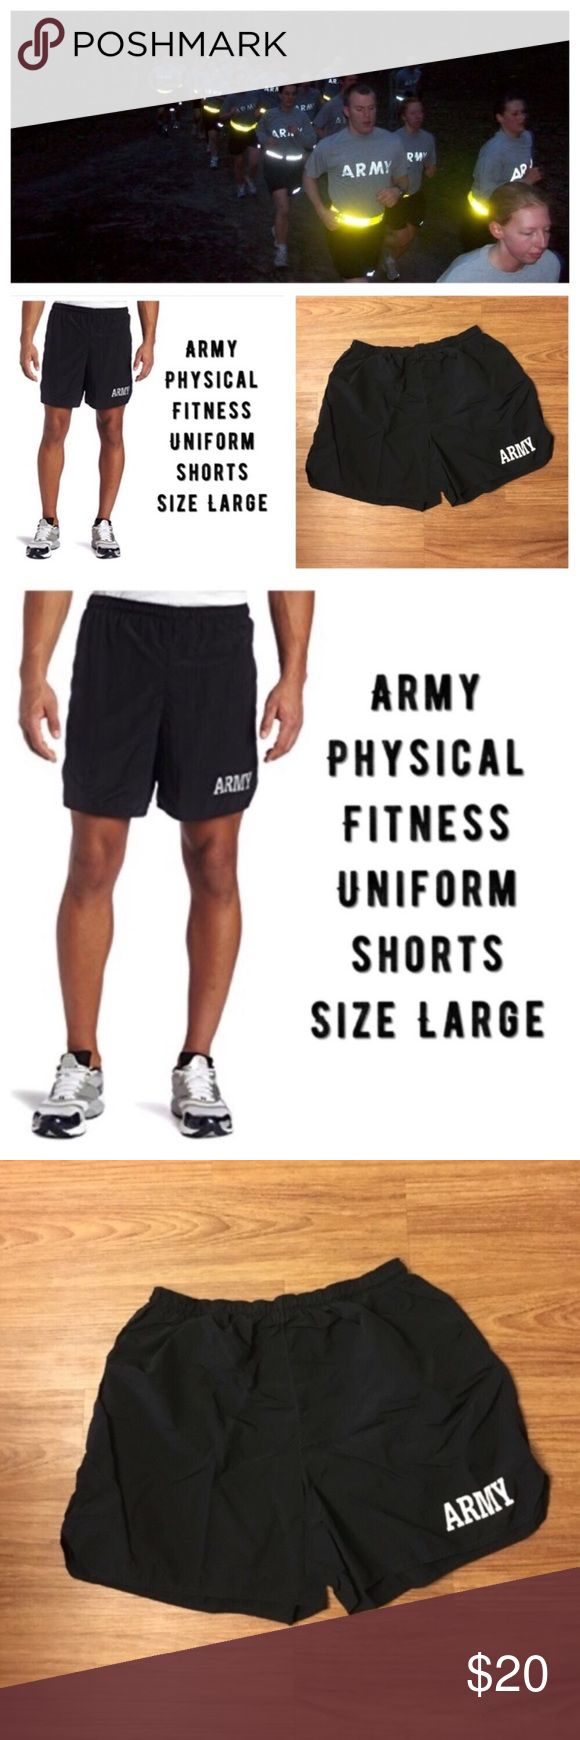 "Army Physical Fitness shorts: all are size Large Same day shipping (as long as P.O. is open for business). ❤ Measurements are approximate. Descriptions are accurate to the best of my knowledge.  Price FIRM (unless bundled). Price is for ONE pair. All size large. No inner tags. They are a synthetic blend. Front: ARMY reflective. No holes/stains. Smoke/pet free home. Flat measurements: 15"" across waist, 5"" inseam. Inner drawstring, small inner waist pocket, ID card pocket outside of right leg…"